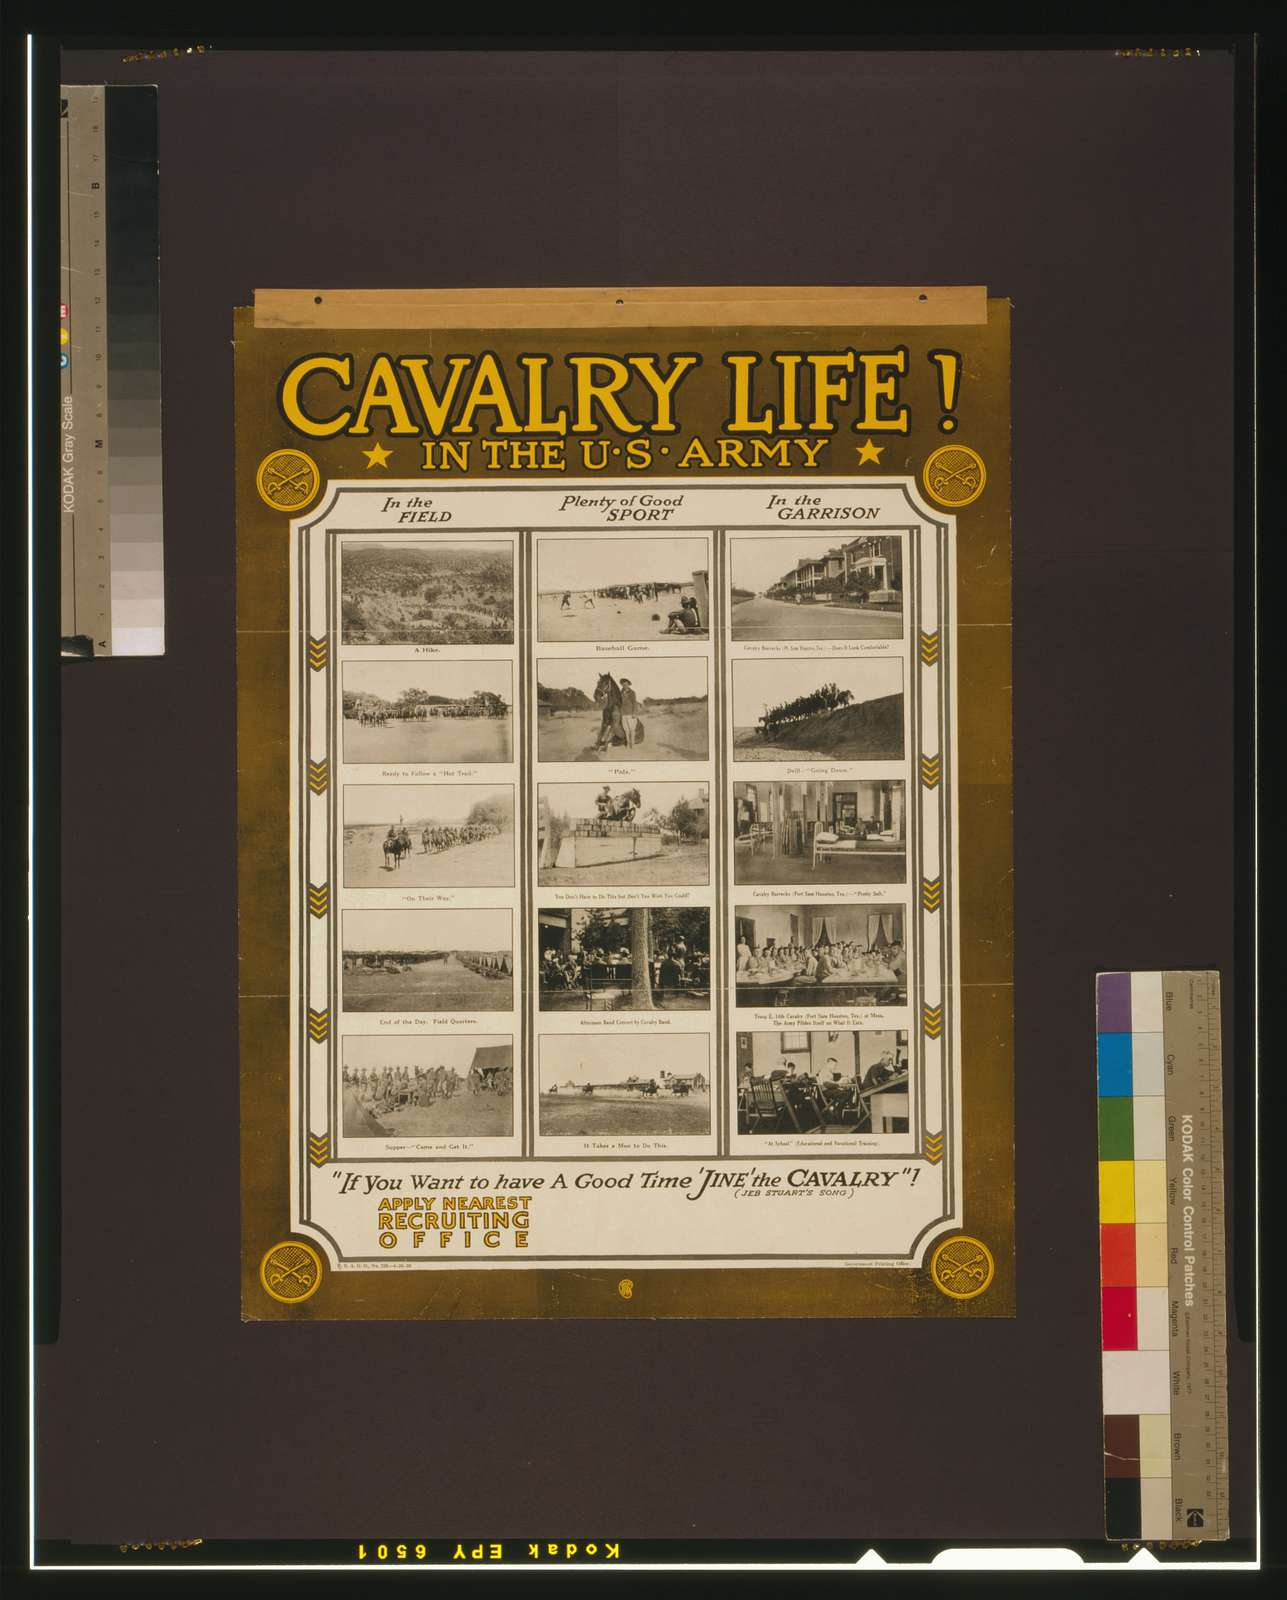 """Cavalry life! In the U.S. Army """"If you want to have a good time 'jine' the cavalry!"""" (Jeb Stuart's song)."""